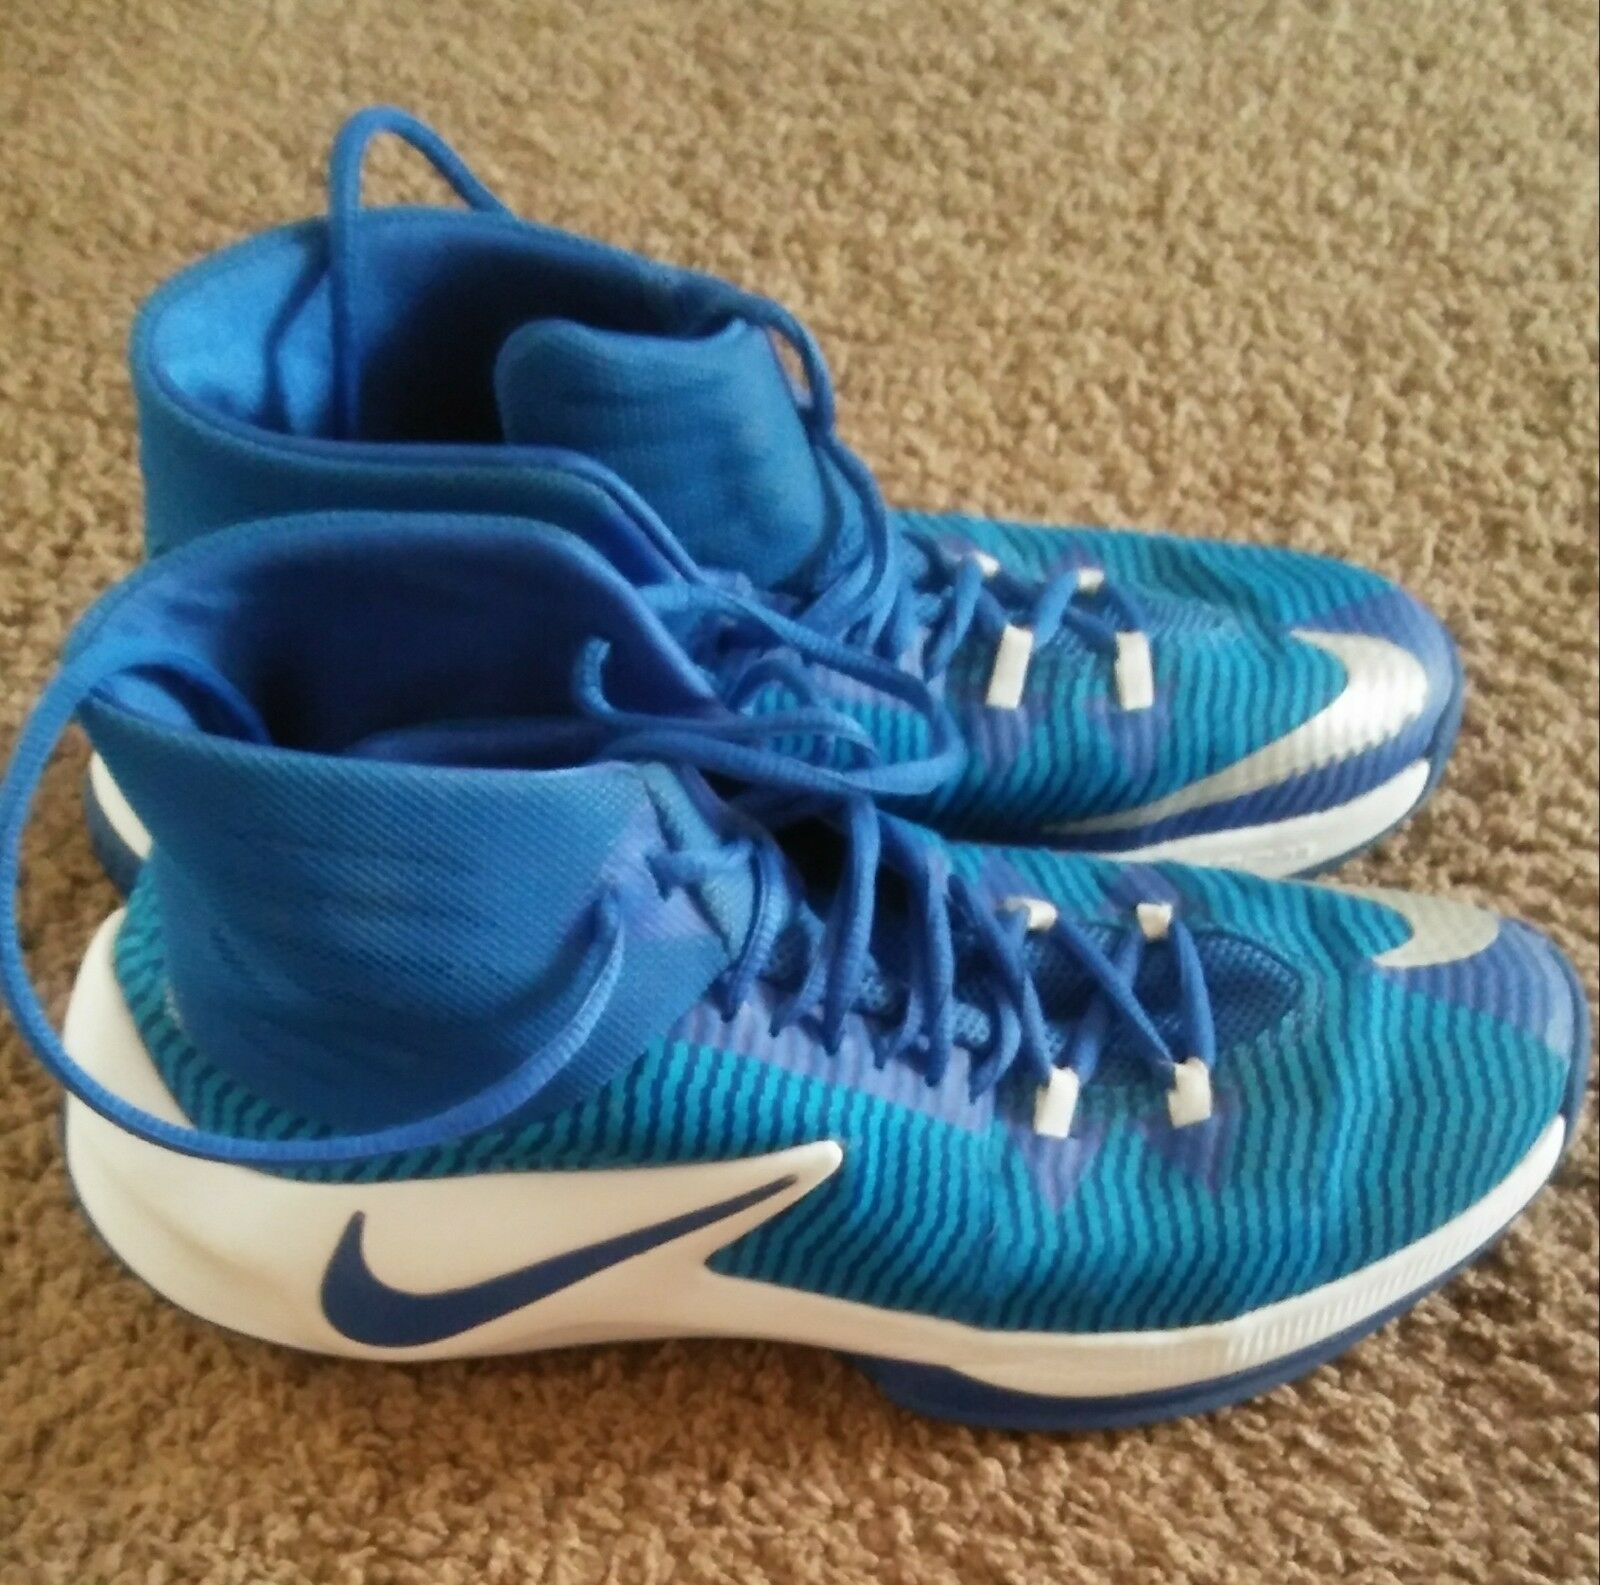 Nike Zoom Clear Out Mens Size 10.5 Basketball shoes Royal bluee White EUC ClearOut